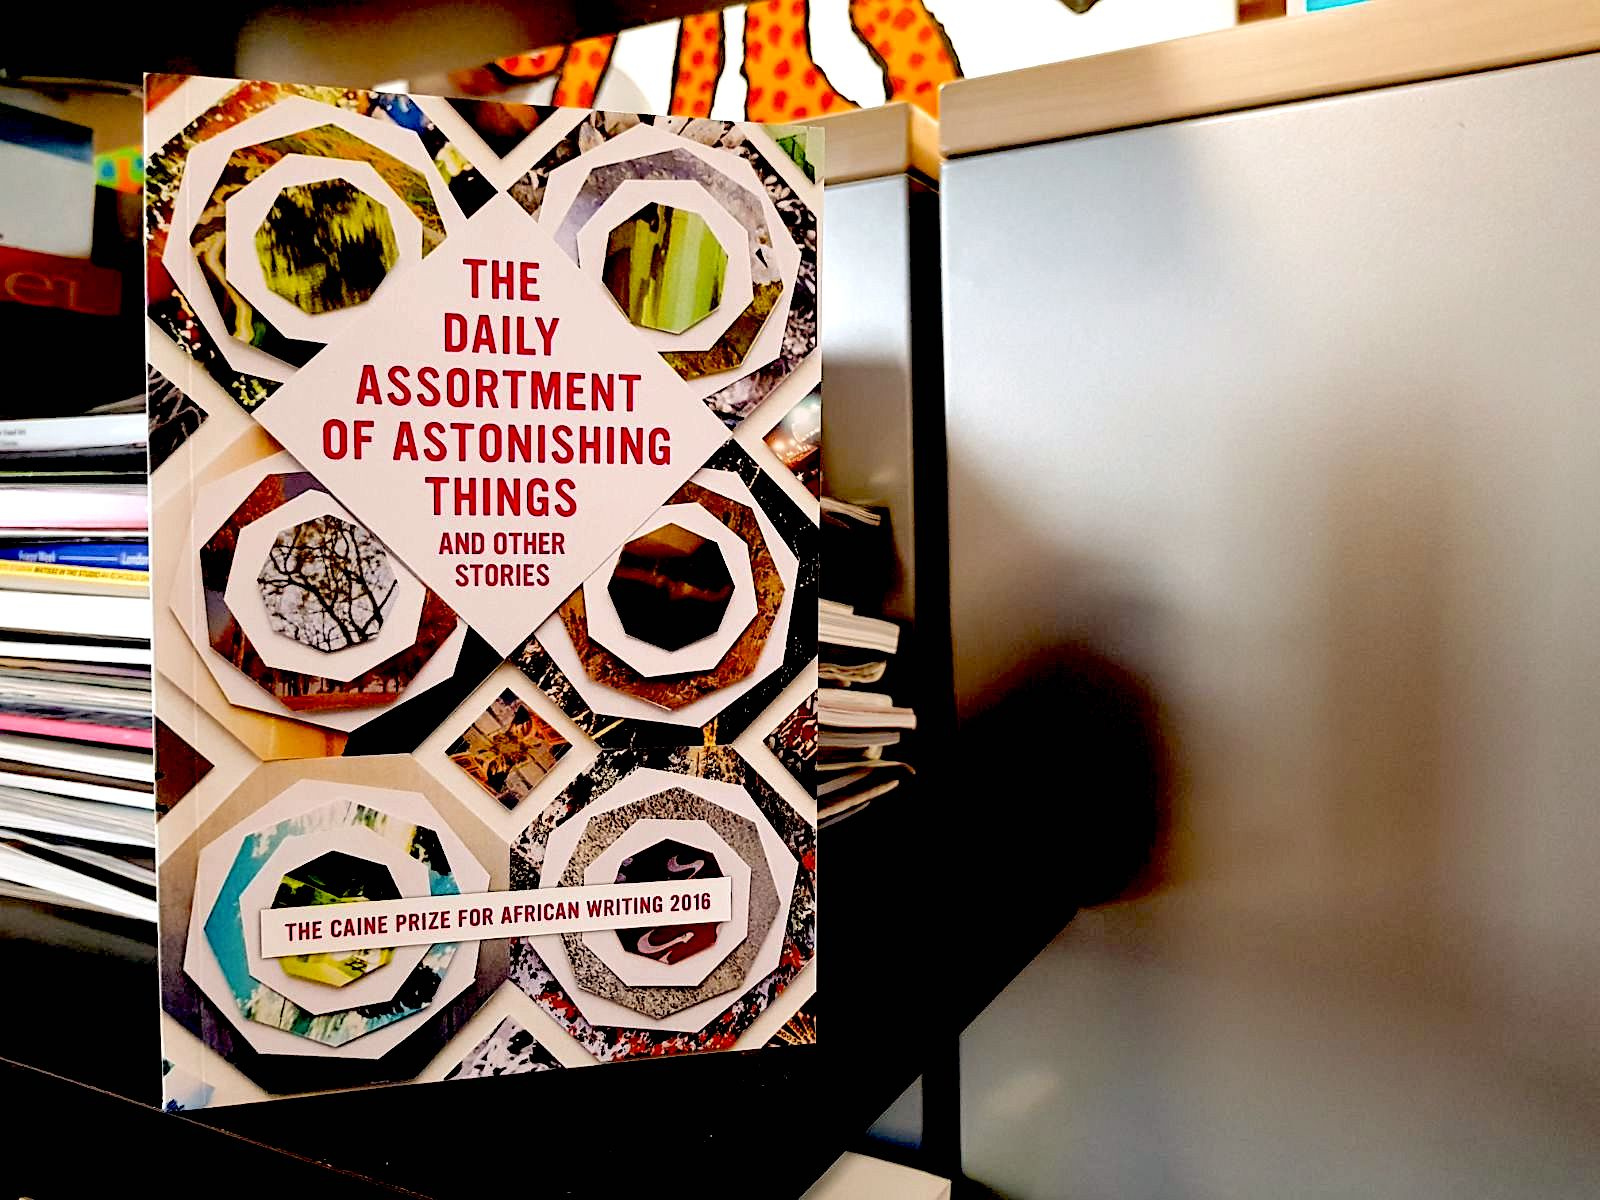 Cover of 2016 anthology 'The Daily Assortment of Astonishing Things' including the shortlisted stories that were translated into Kiswahili.